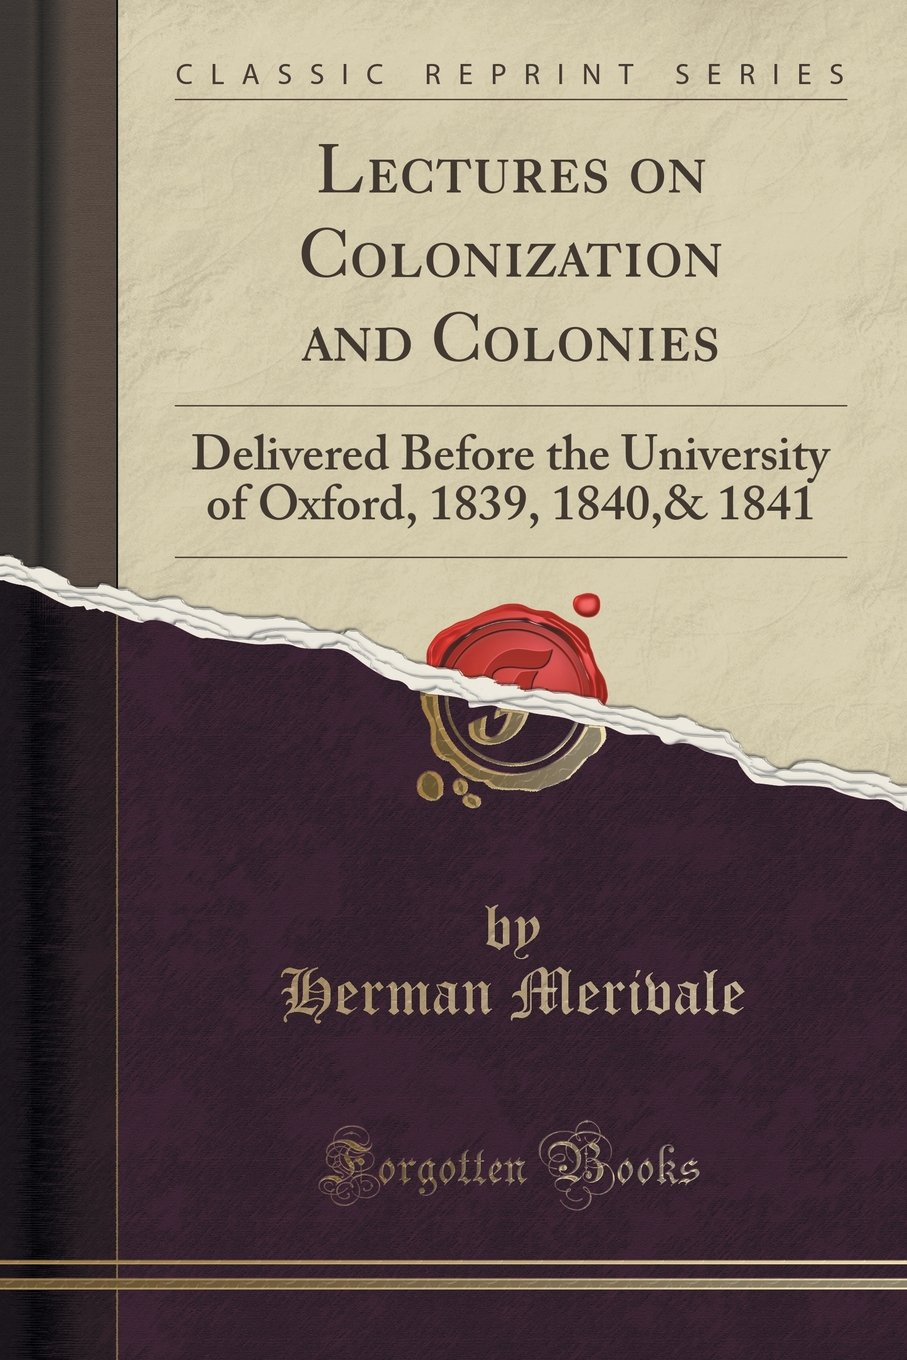 Lectures on Colonization and Colonies: Delivered Before the University of Oxford, 1839, 1840,& 1841 (Classic Reprint) PDF